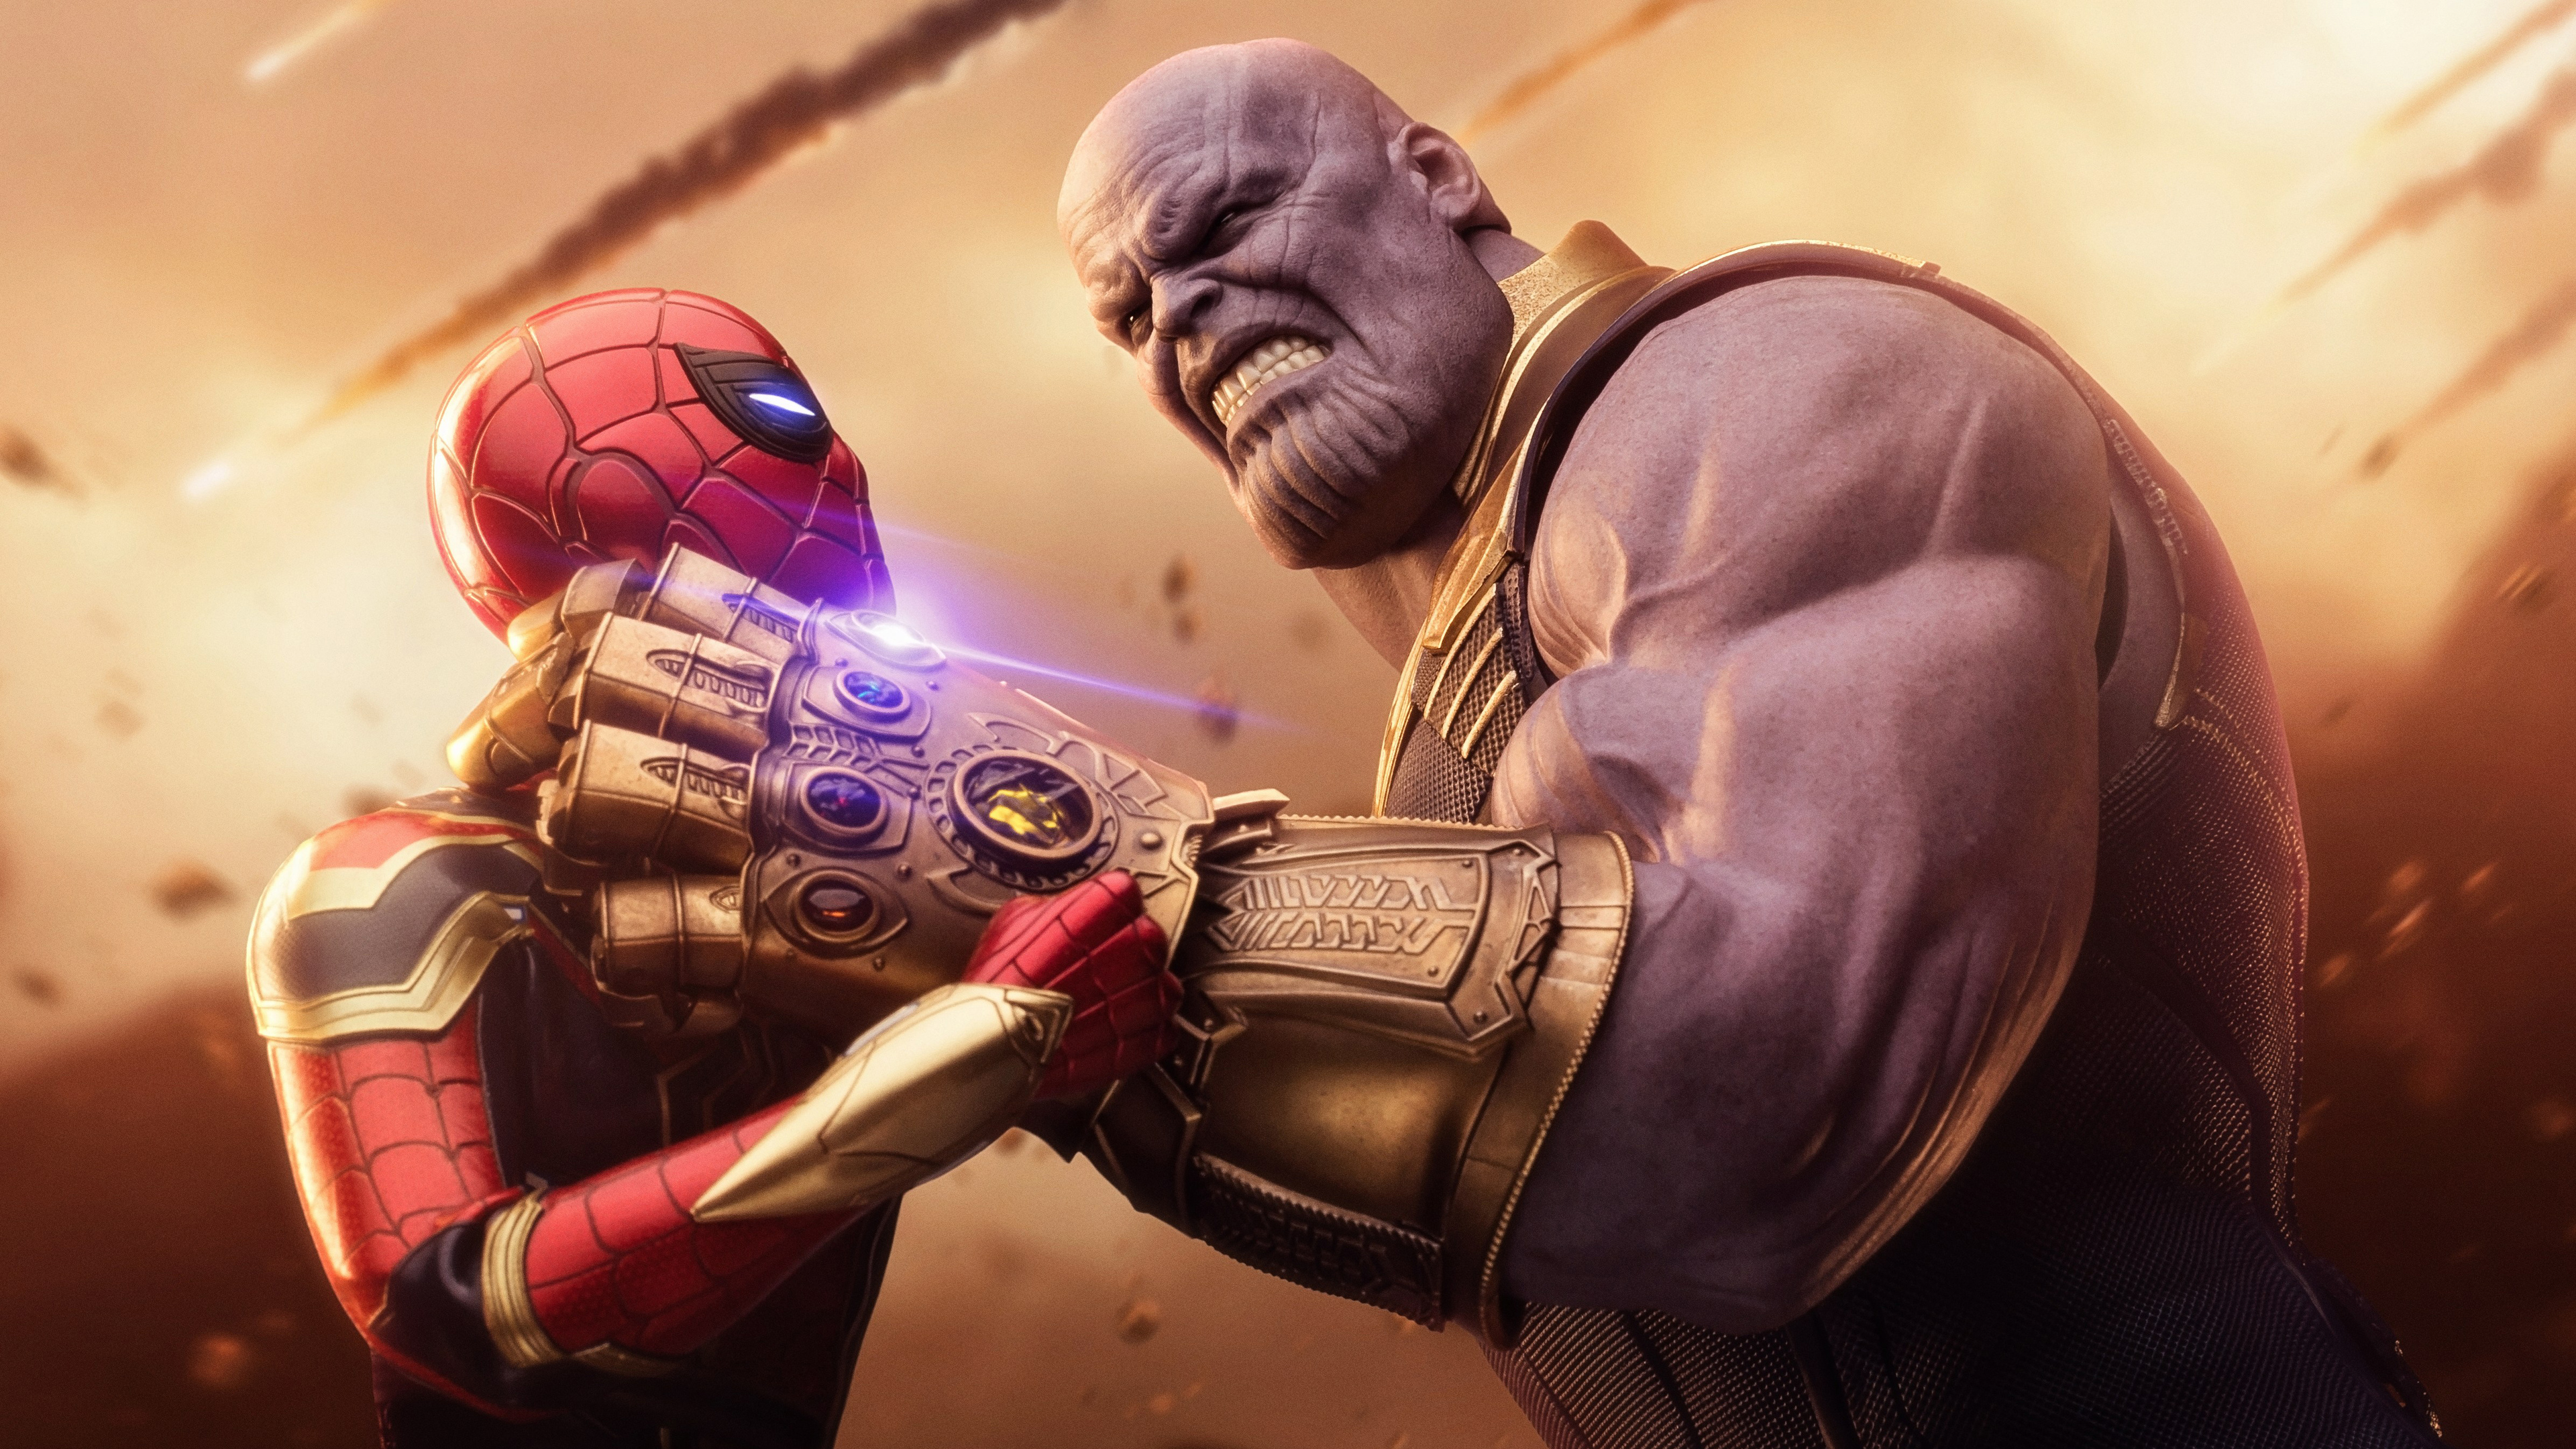 Wallpaper 4k Spiderman Thanos Avengers Infinity War 4k 4k Wallpapers 5k Wallpapers Artwork Wallpapers Digital Art Wallpapers Hd Wallpapers Spiderman Wallpapers Superheroes Wallpapers Thanos Wallpapers